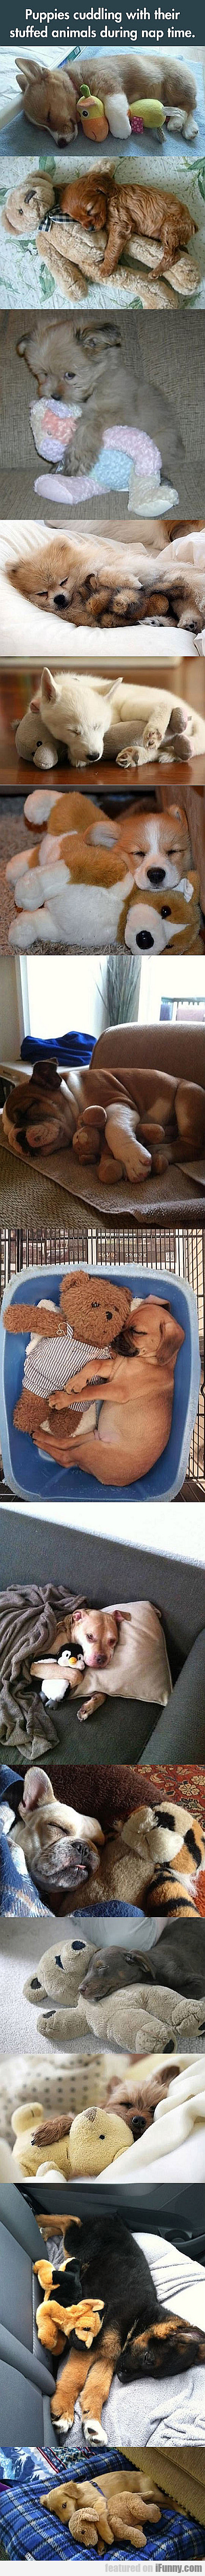 Puppies Cuddling With Their Stuffed Animals